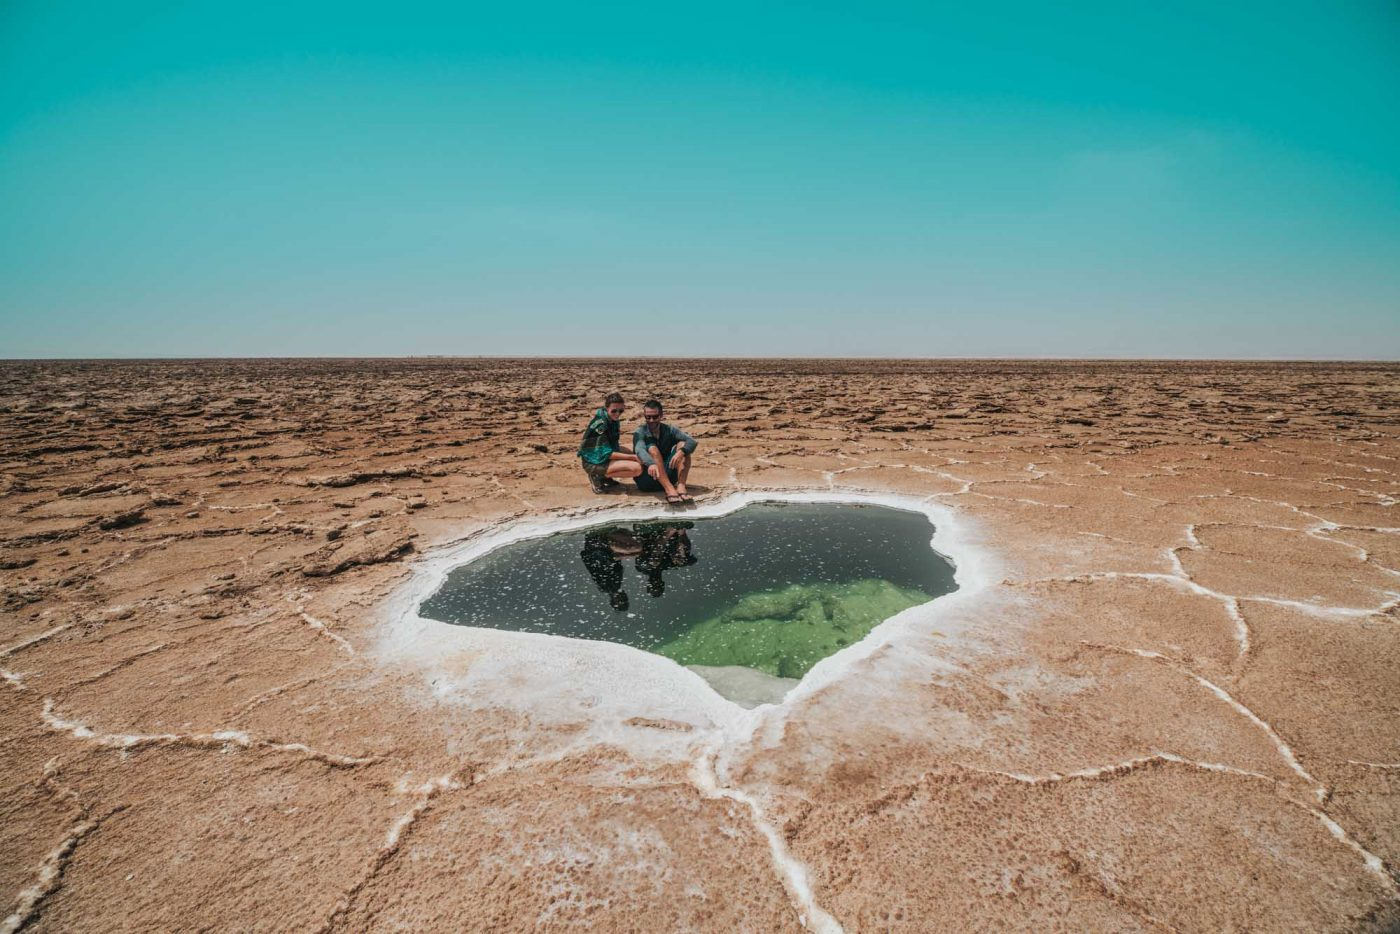 Admiring a small salt lake amidst the arid landscape of Dallol region in Danakil Depression